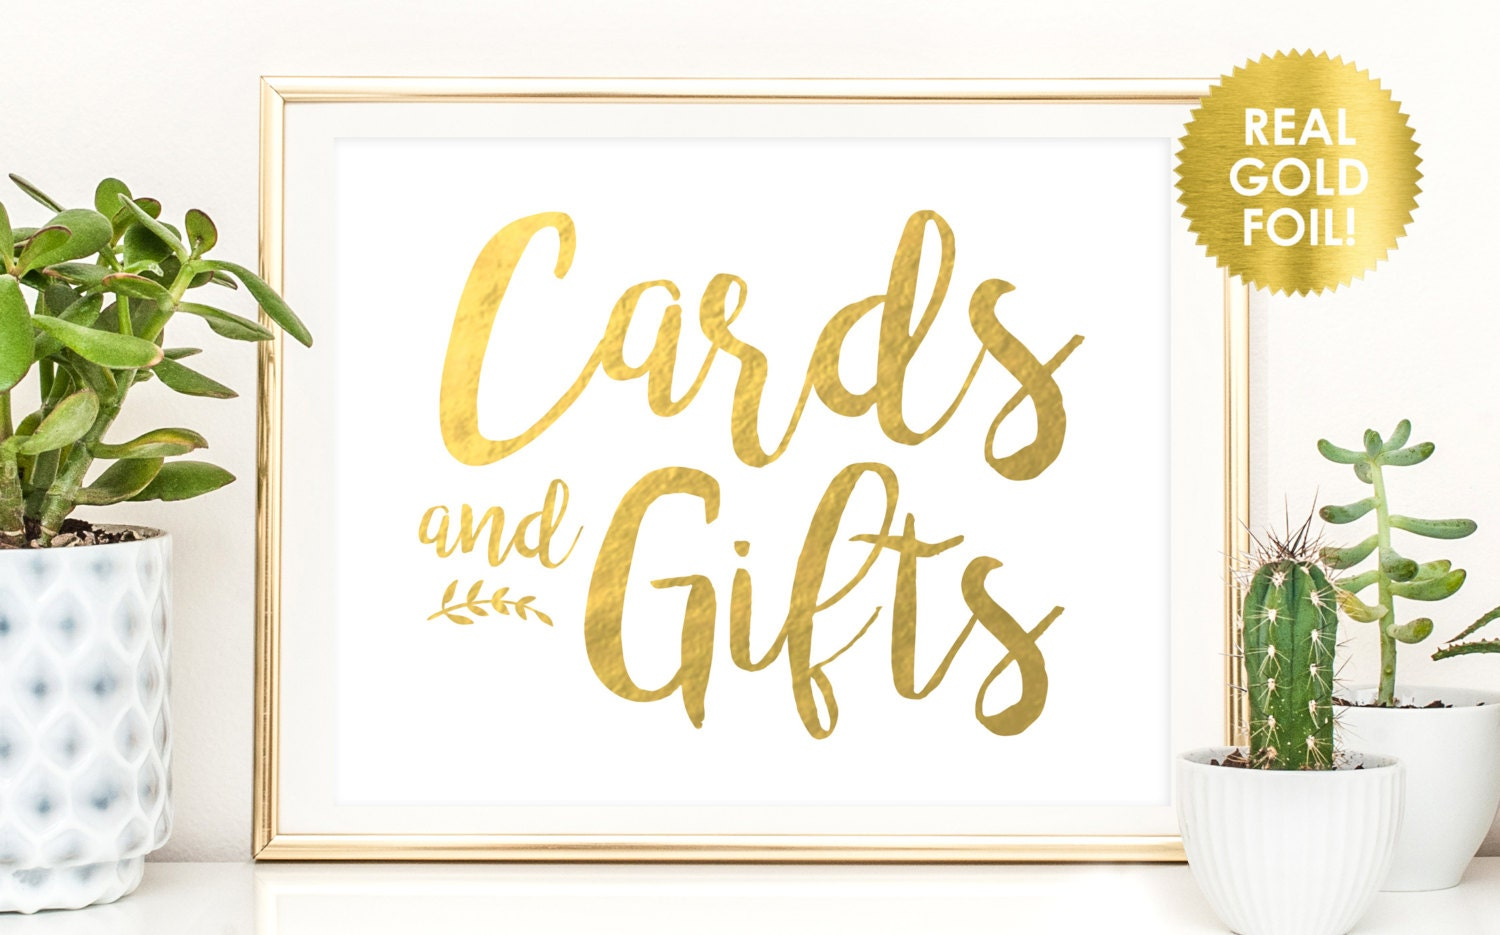 Me To You Wedding Gifts: CARDS AND GIFTS Sign In Gold Foil / Gift Table Signs